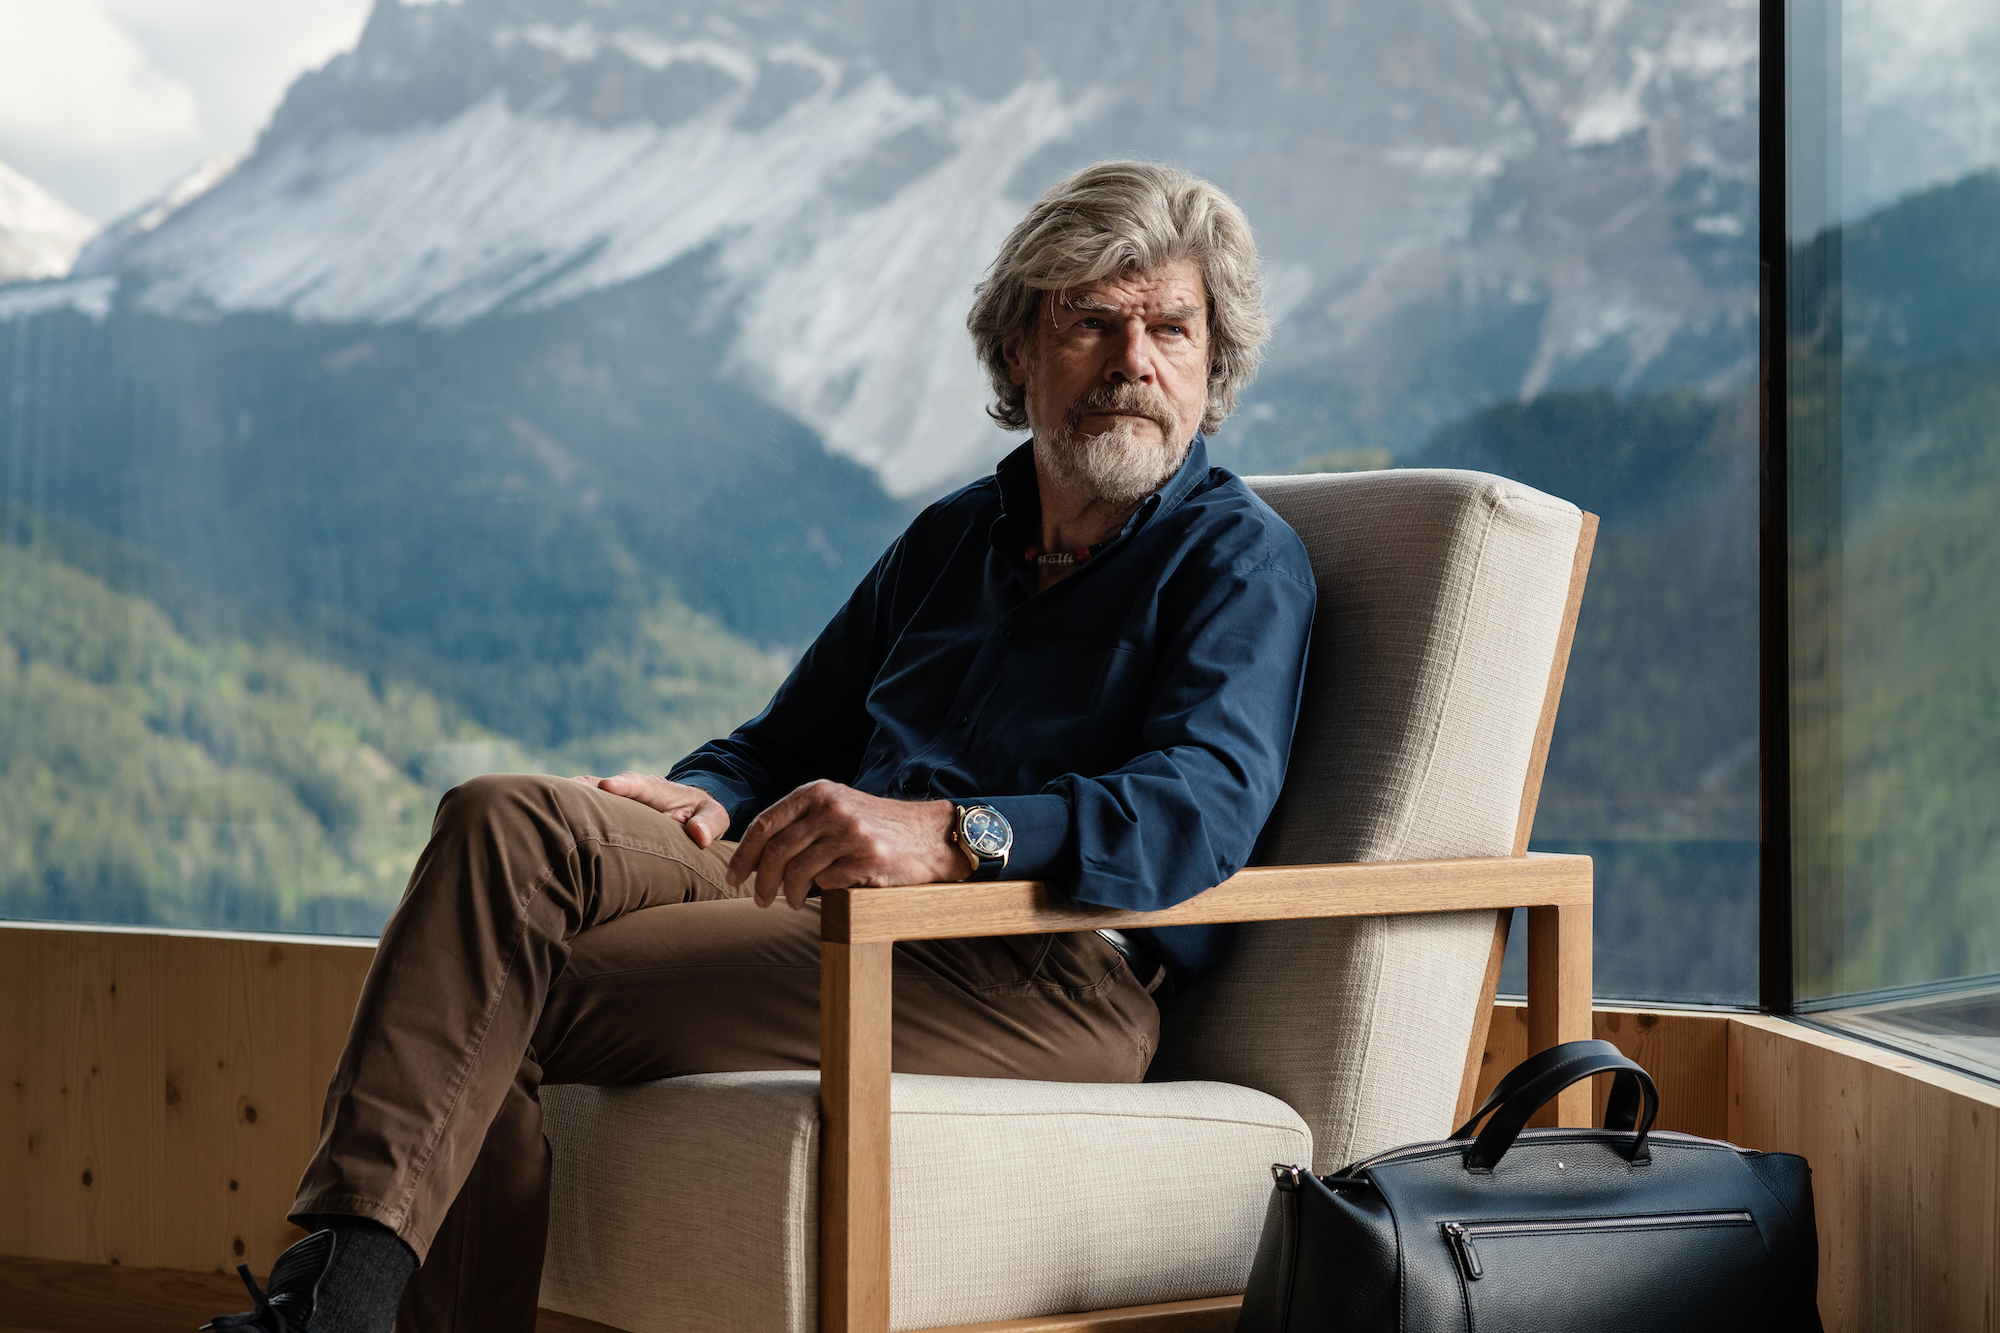 Montblanc 1858 Geosphere Messner Limited Edition 262 pieces - Reinhold Messner lifestyle 2